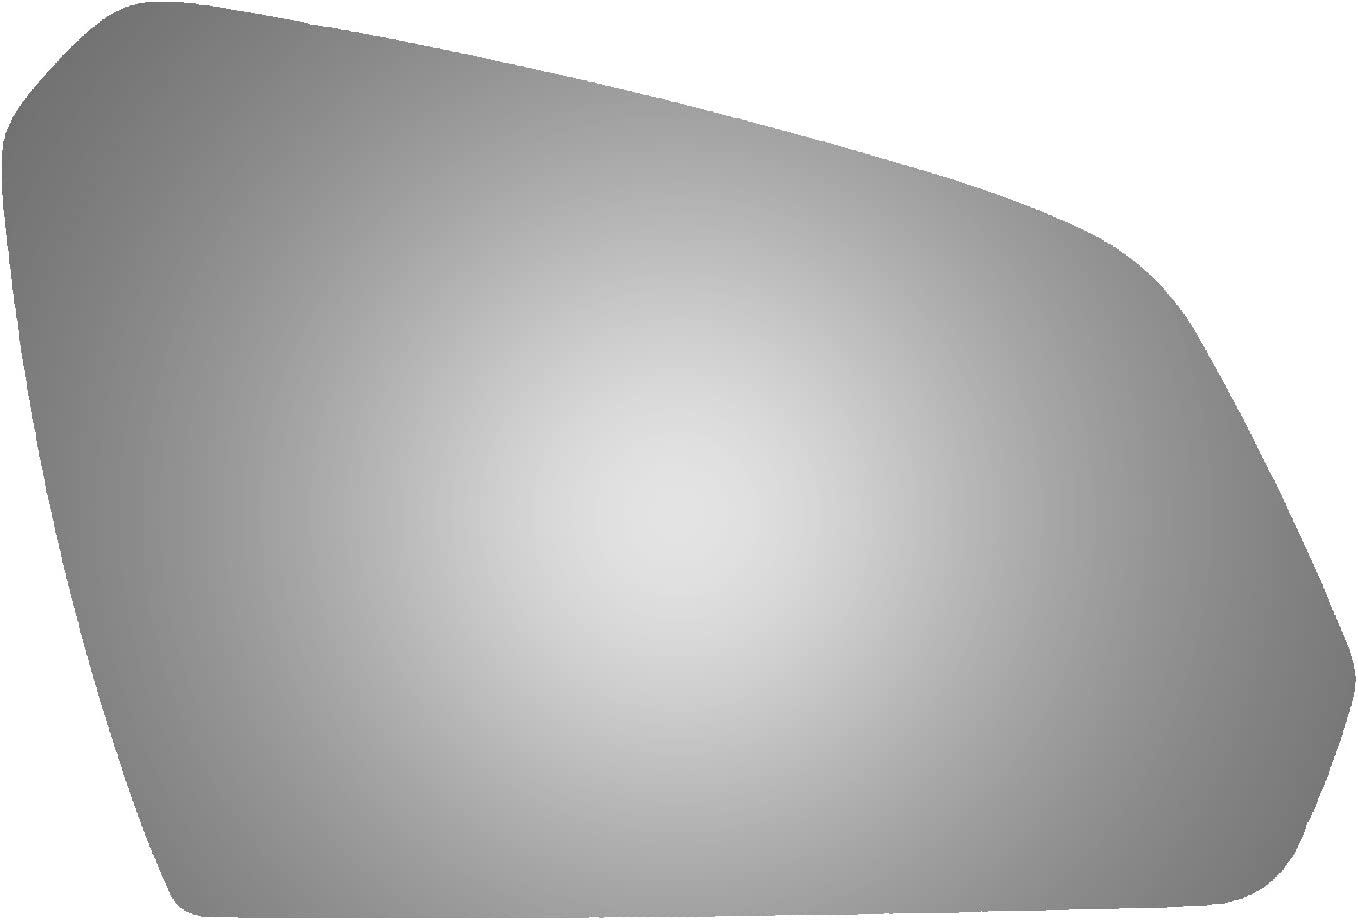 Burco 5620 Convex Passenger Side Power Replacement Mirror Glass (Mount Not Included) for 15-17 Hyundai Sonata (2015, 2016, 2017)